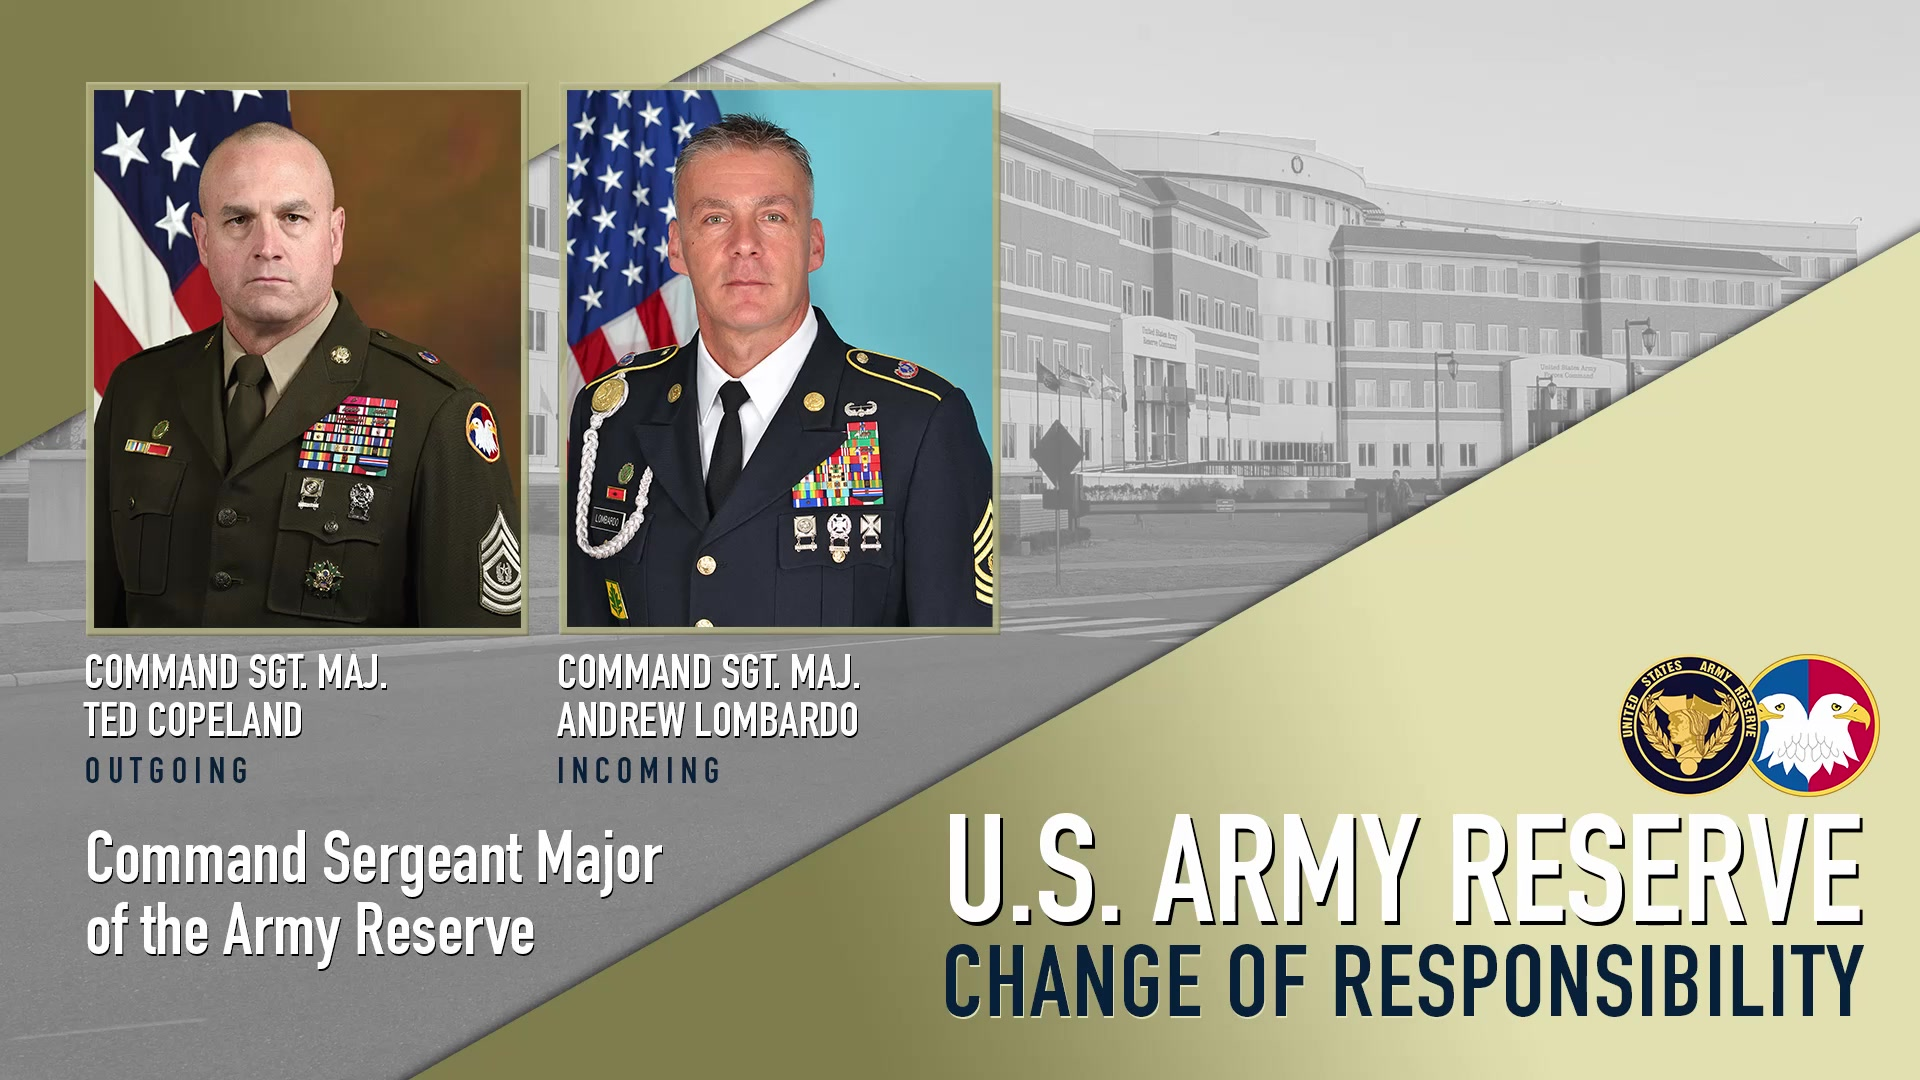 This video serves as the virtual Change of Responsibility ceremony between Previously, Lombardo served as command sergeant major of the 200th Military Police Command, Fort Meade, Md. He is a combat veteran who has served in every leadership position from team leader to division command sergeant major.